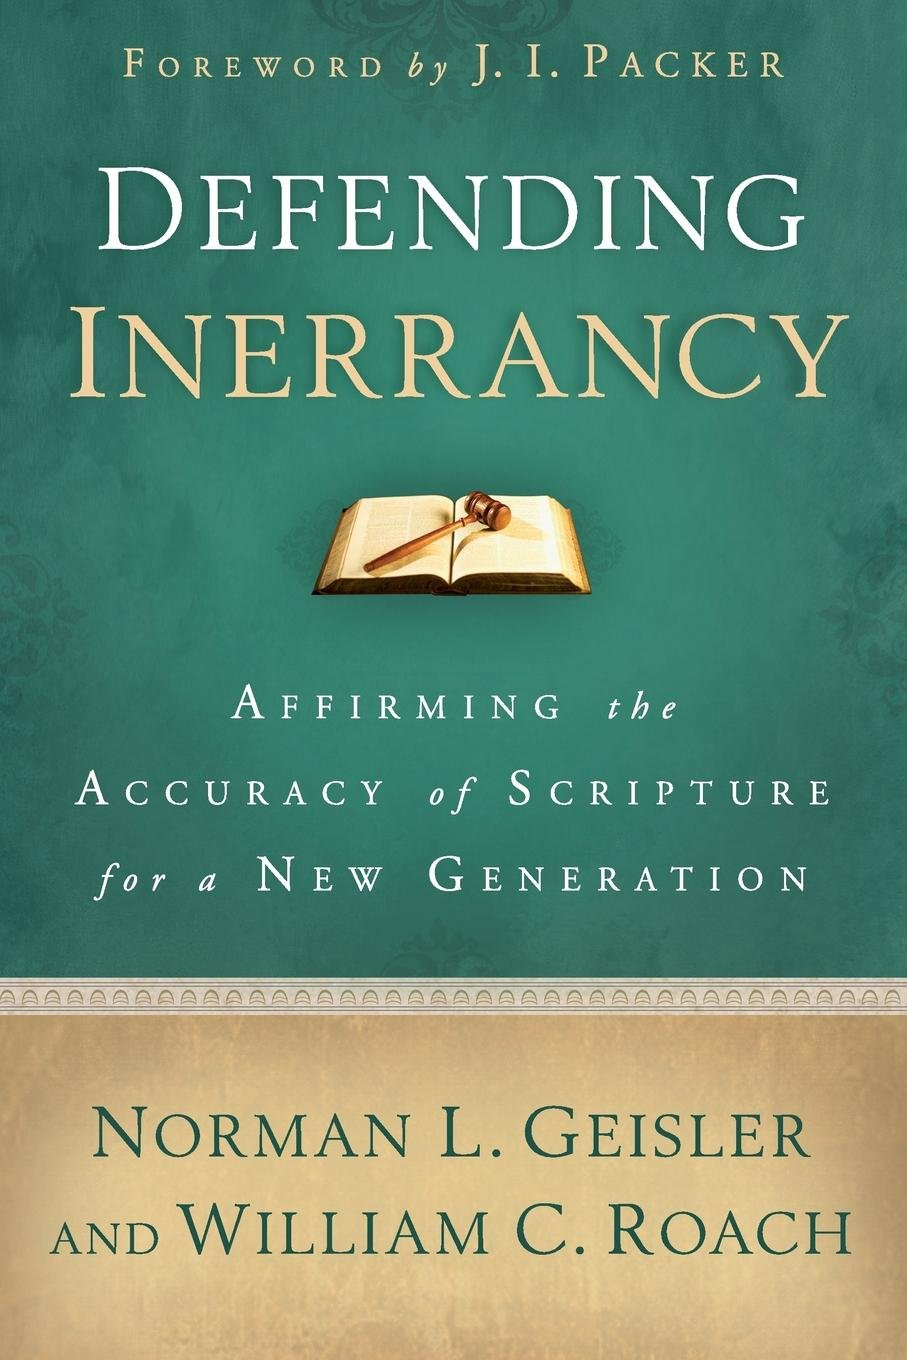 Defending Inerrancy: Affirming the Accuracy of Scripture for a New  Generation: Norman L. Geisler, William C. Roach, J. Packer: 9780801014345:  Amazon.com: ...